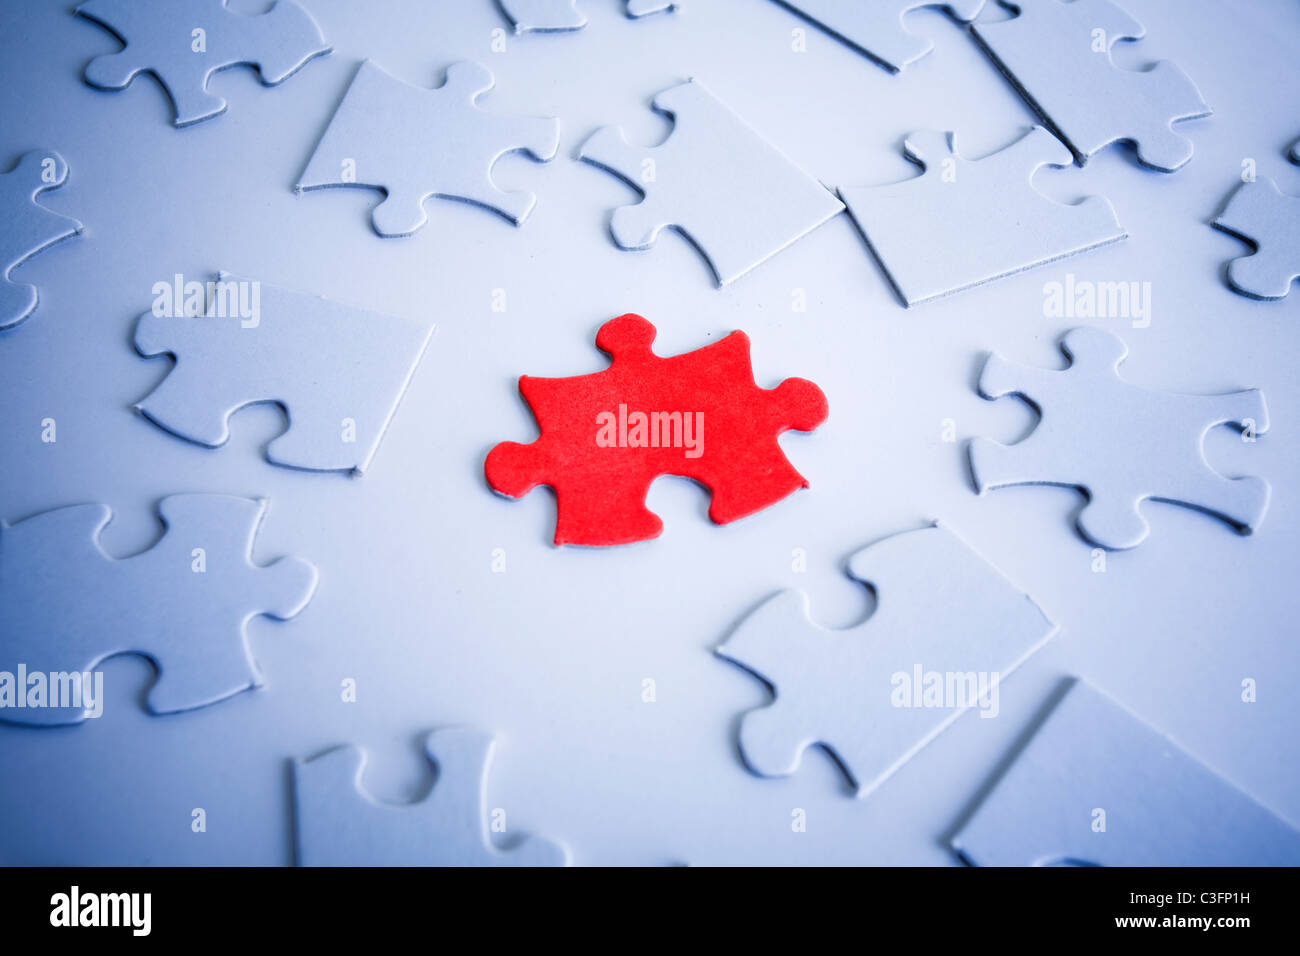 Red jigsaw piece among white pieces. - Stock Image